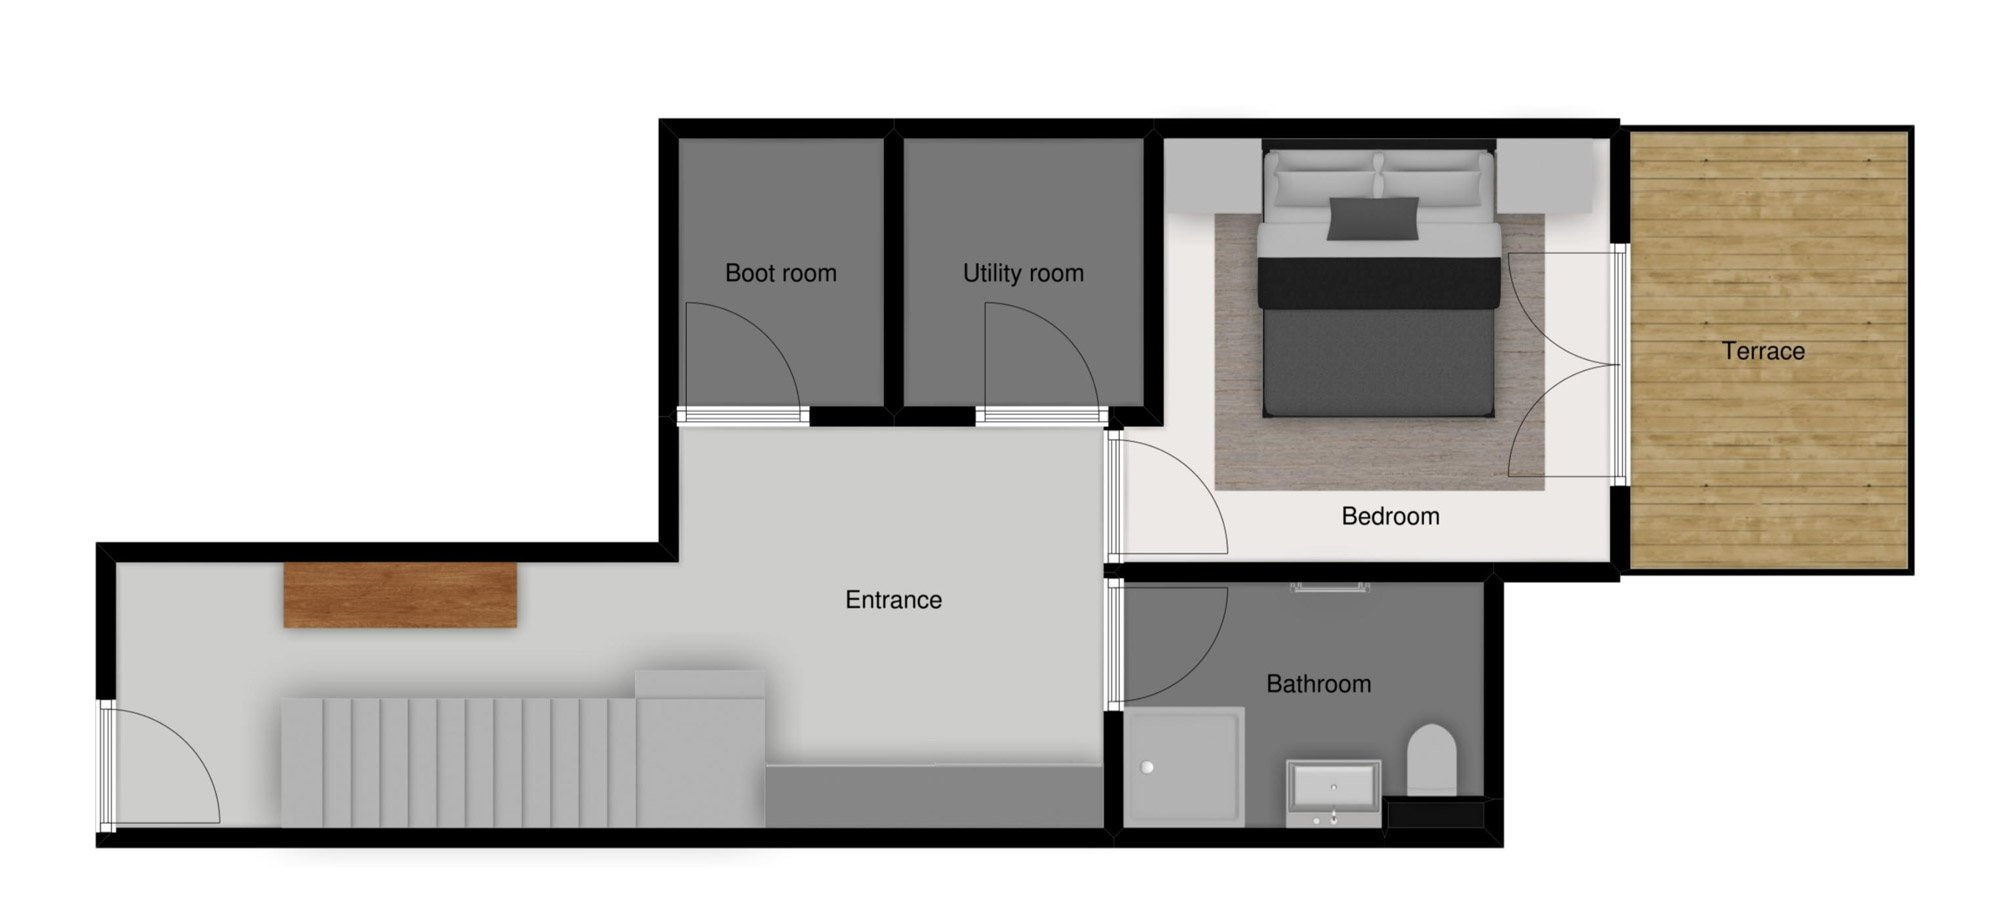 Floor plans of Chalet Le Pic Blanc in St Martin de Belleville - Ground floor